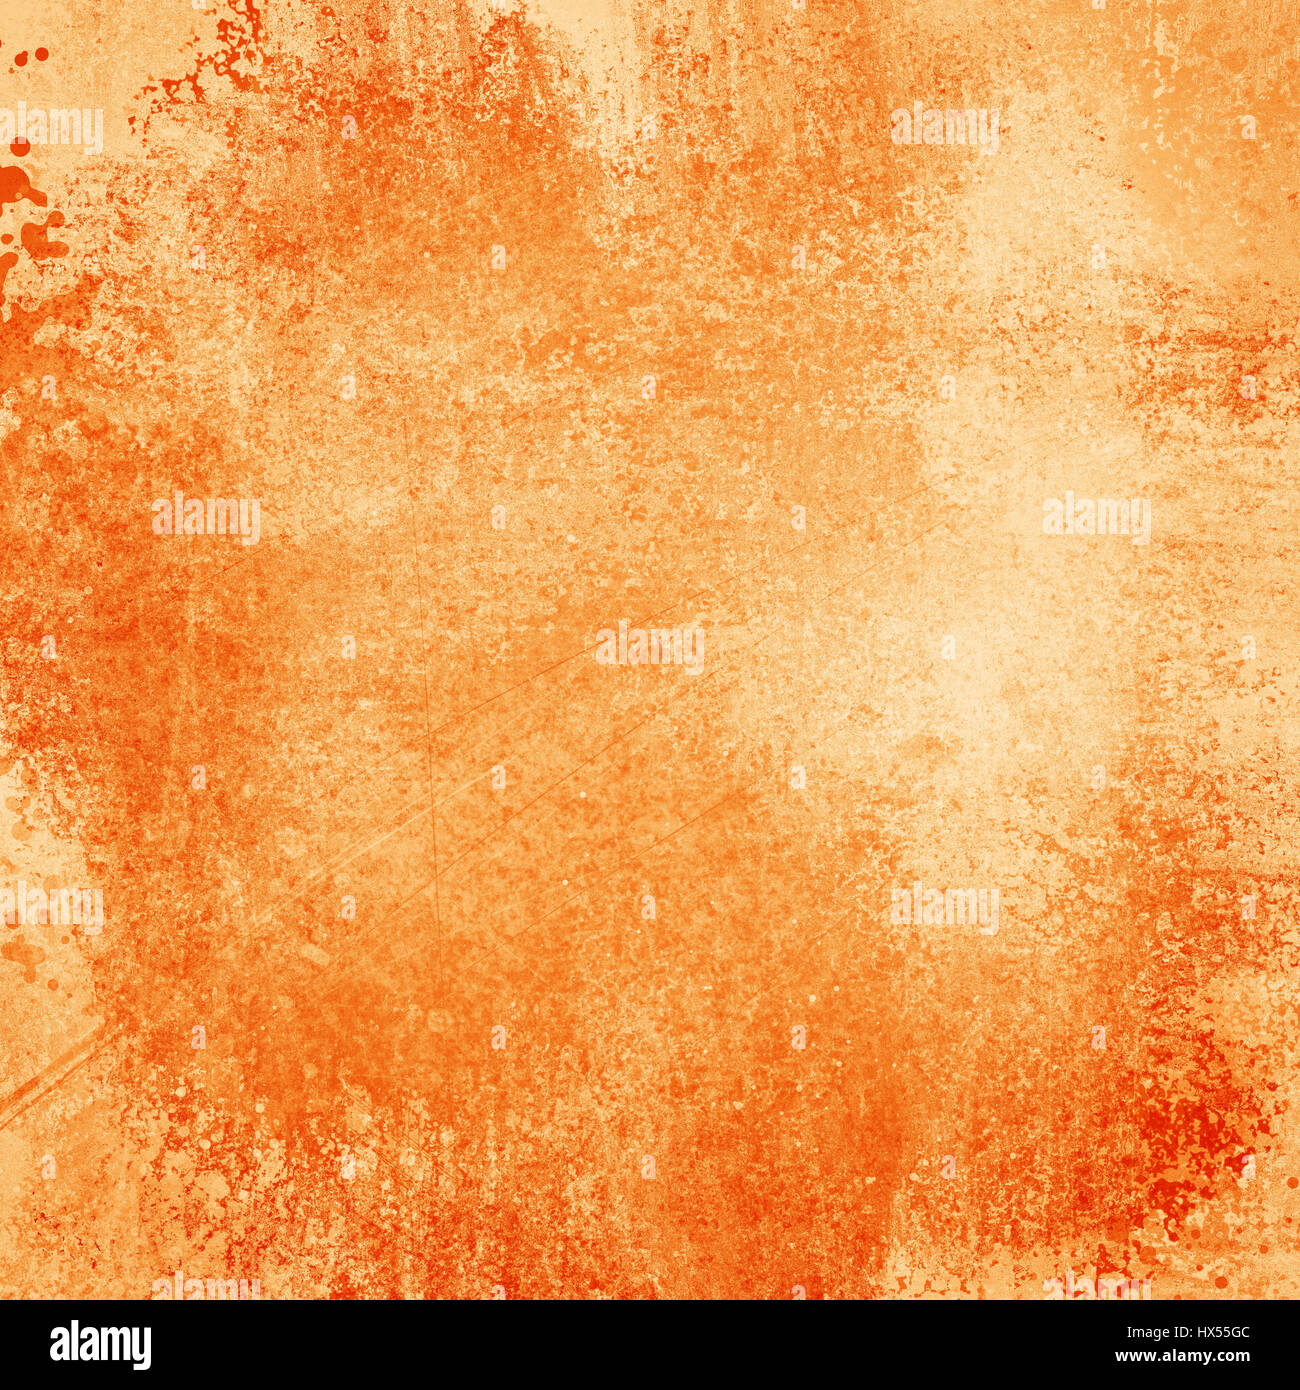 Old Bright Orange Paper Background With Grunge And Messy Stains Paint Blotches Distressed Faded Wallpaper Design Grungy Antique Texture